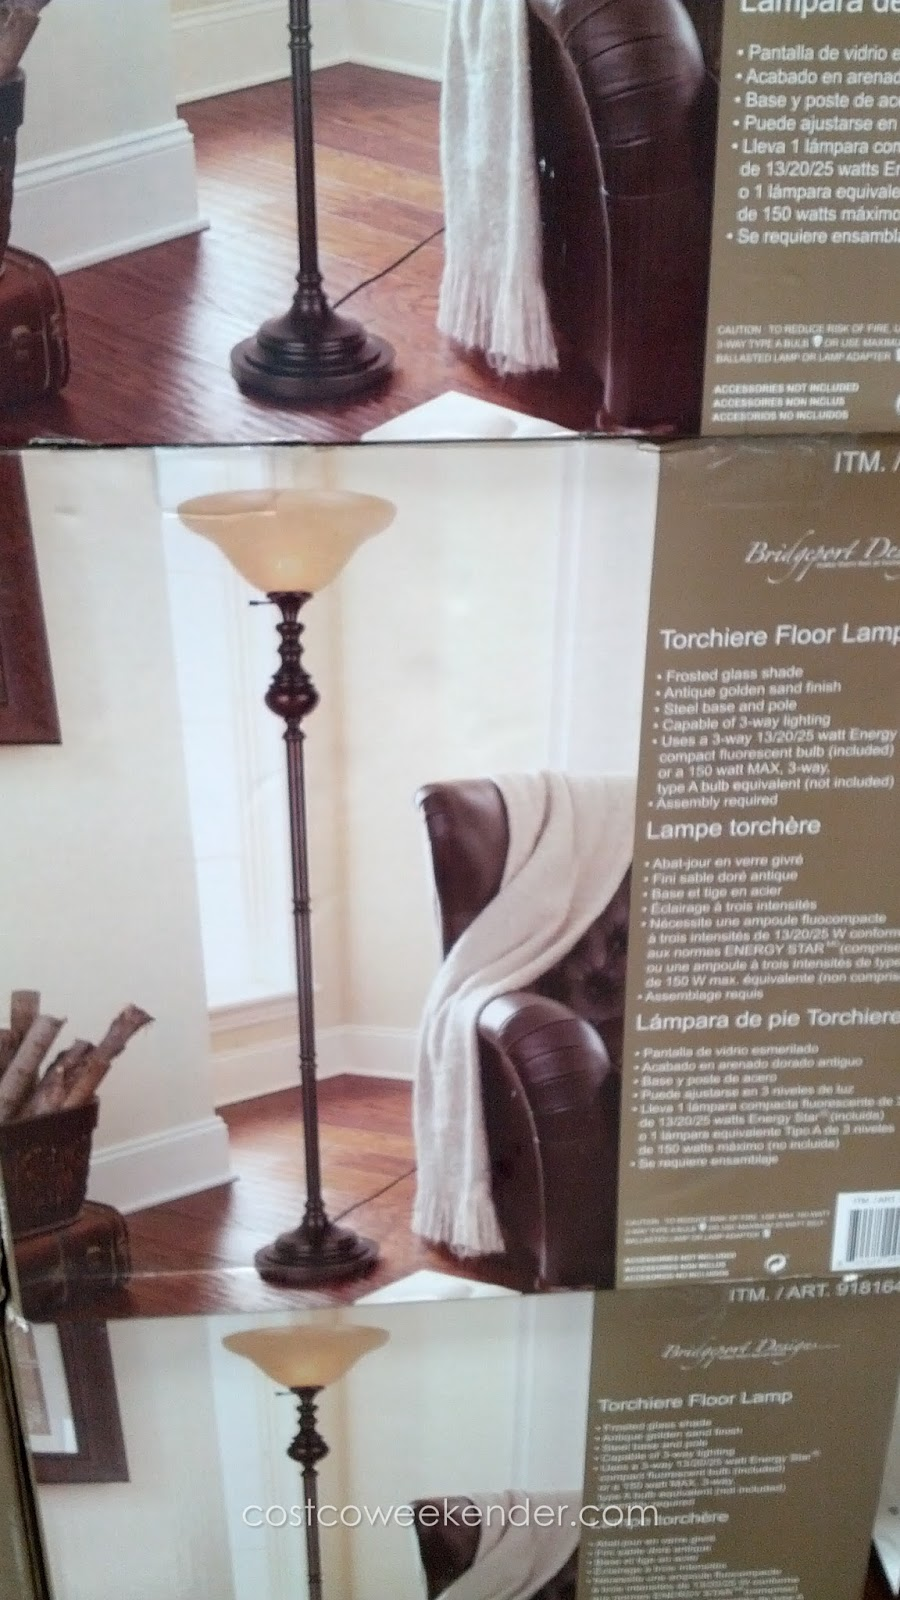 Bridgeport Designs Torchiere Floor Lamp | Costco Weekender